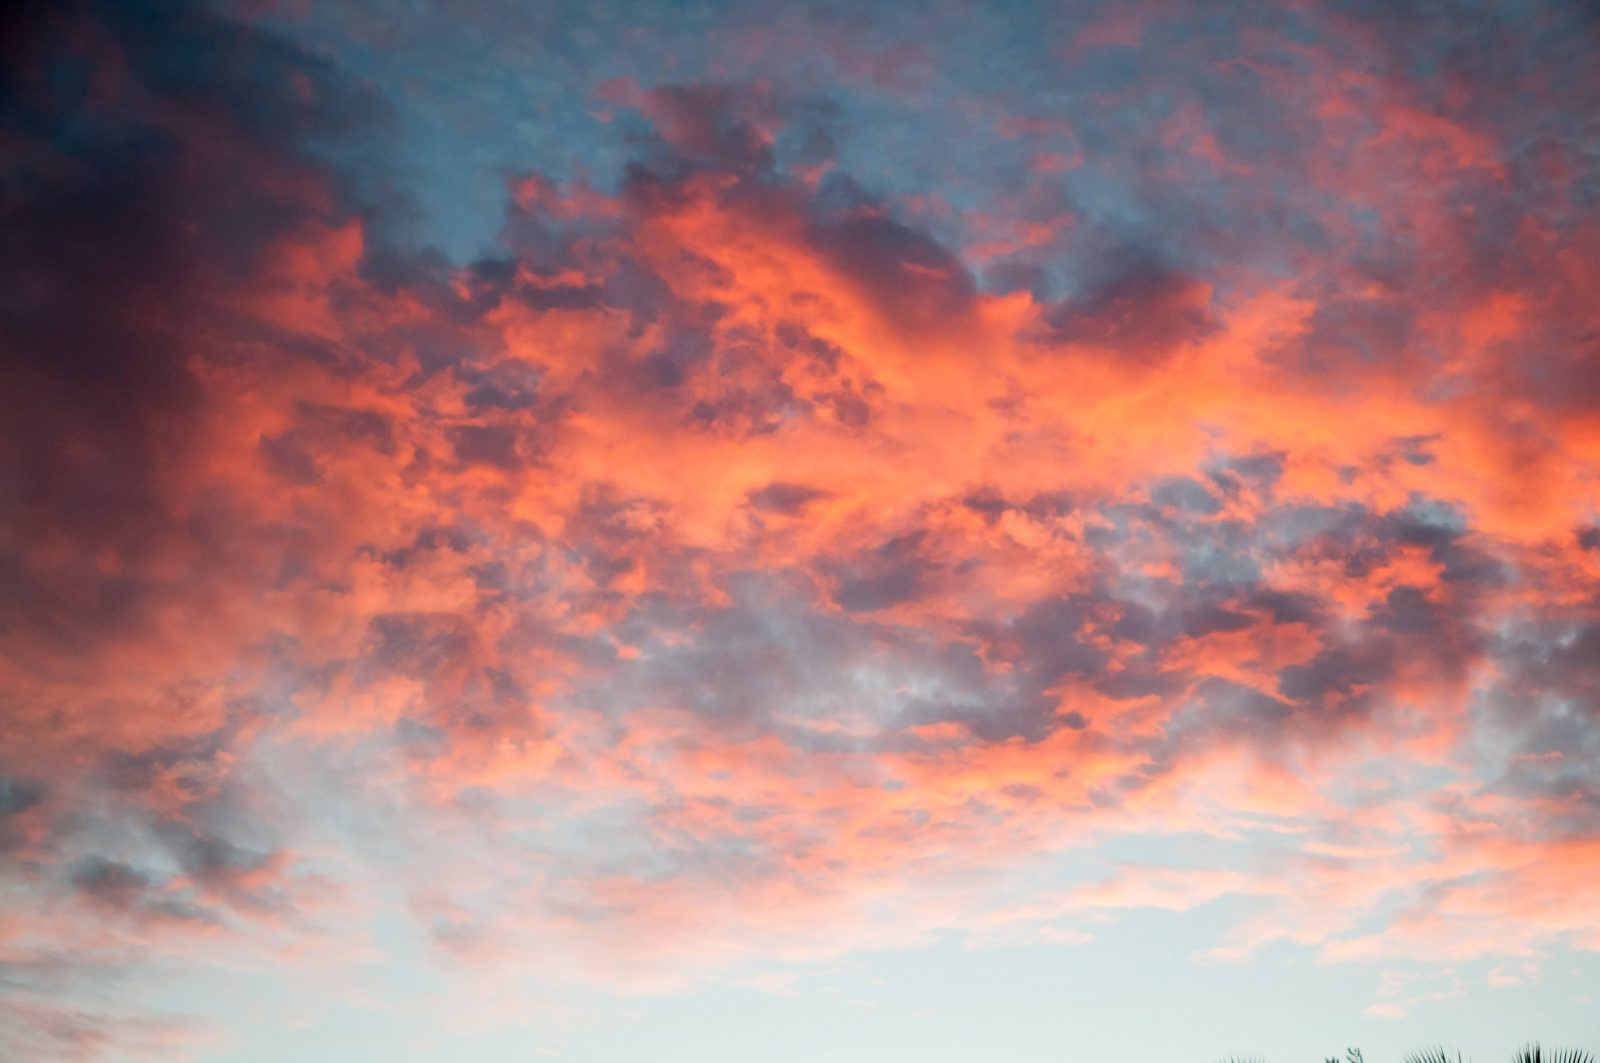 Sunset Reflected on Orange Bright Lit clouds